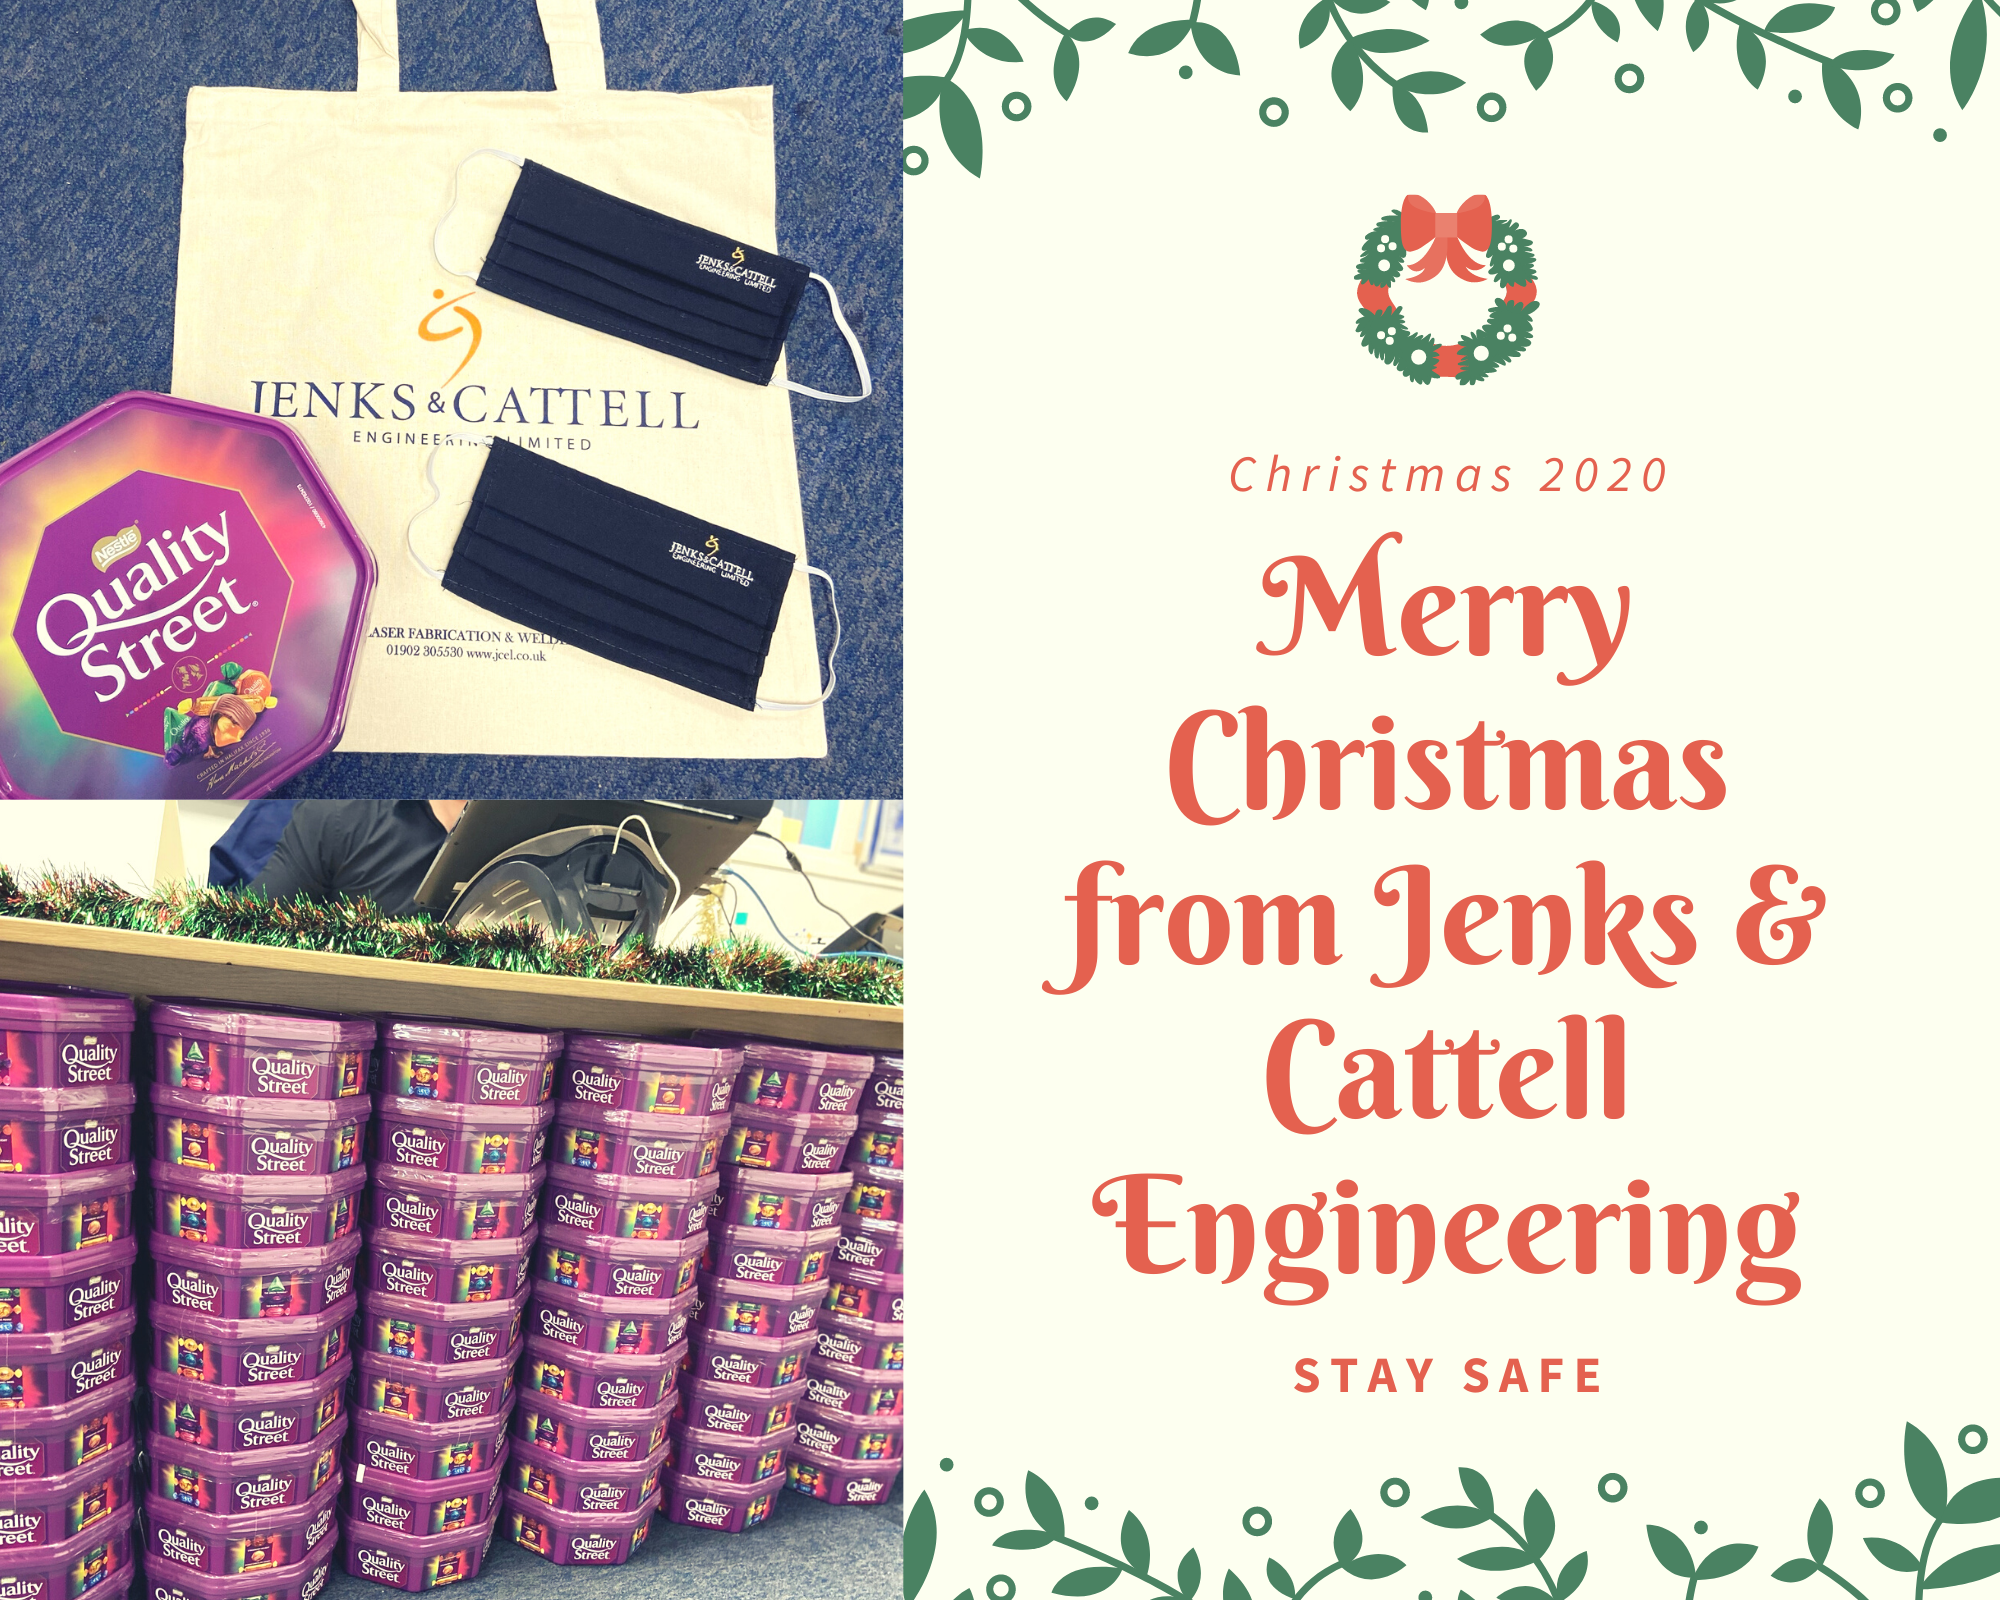 Jenks & Cattell Merry Christmas to Everyone